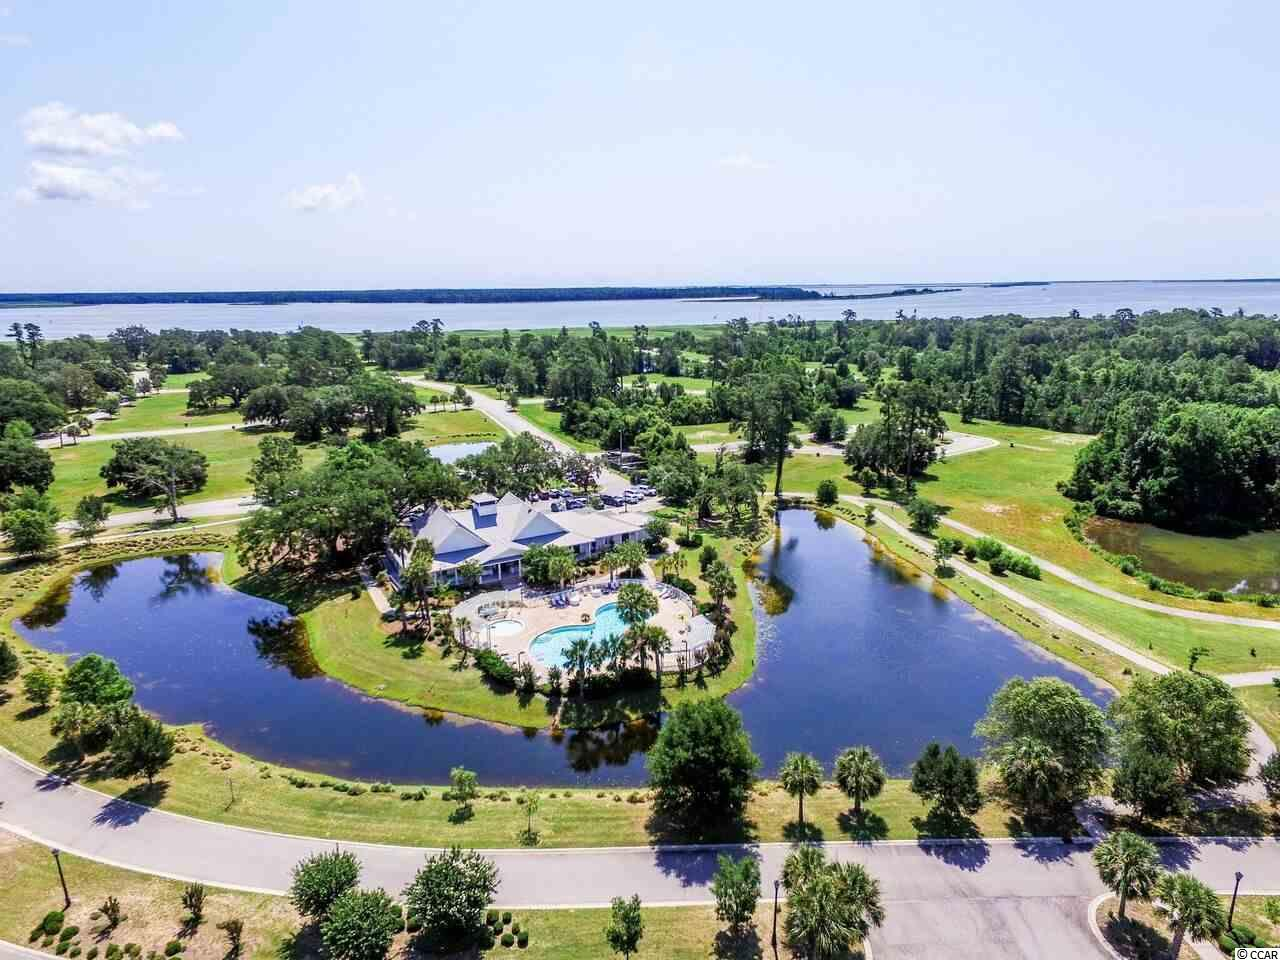 Land for Sale at 5 Belle Rive Road 5 Belle Rive Road Georgetown, South Carolina 29440 United States